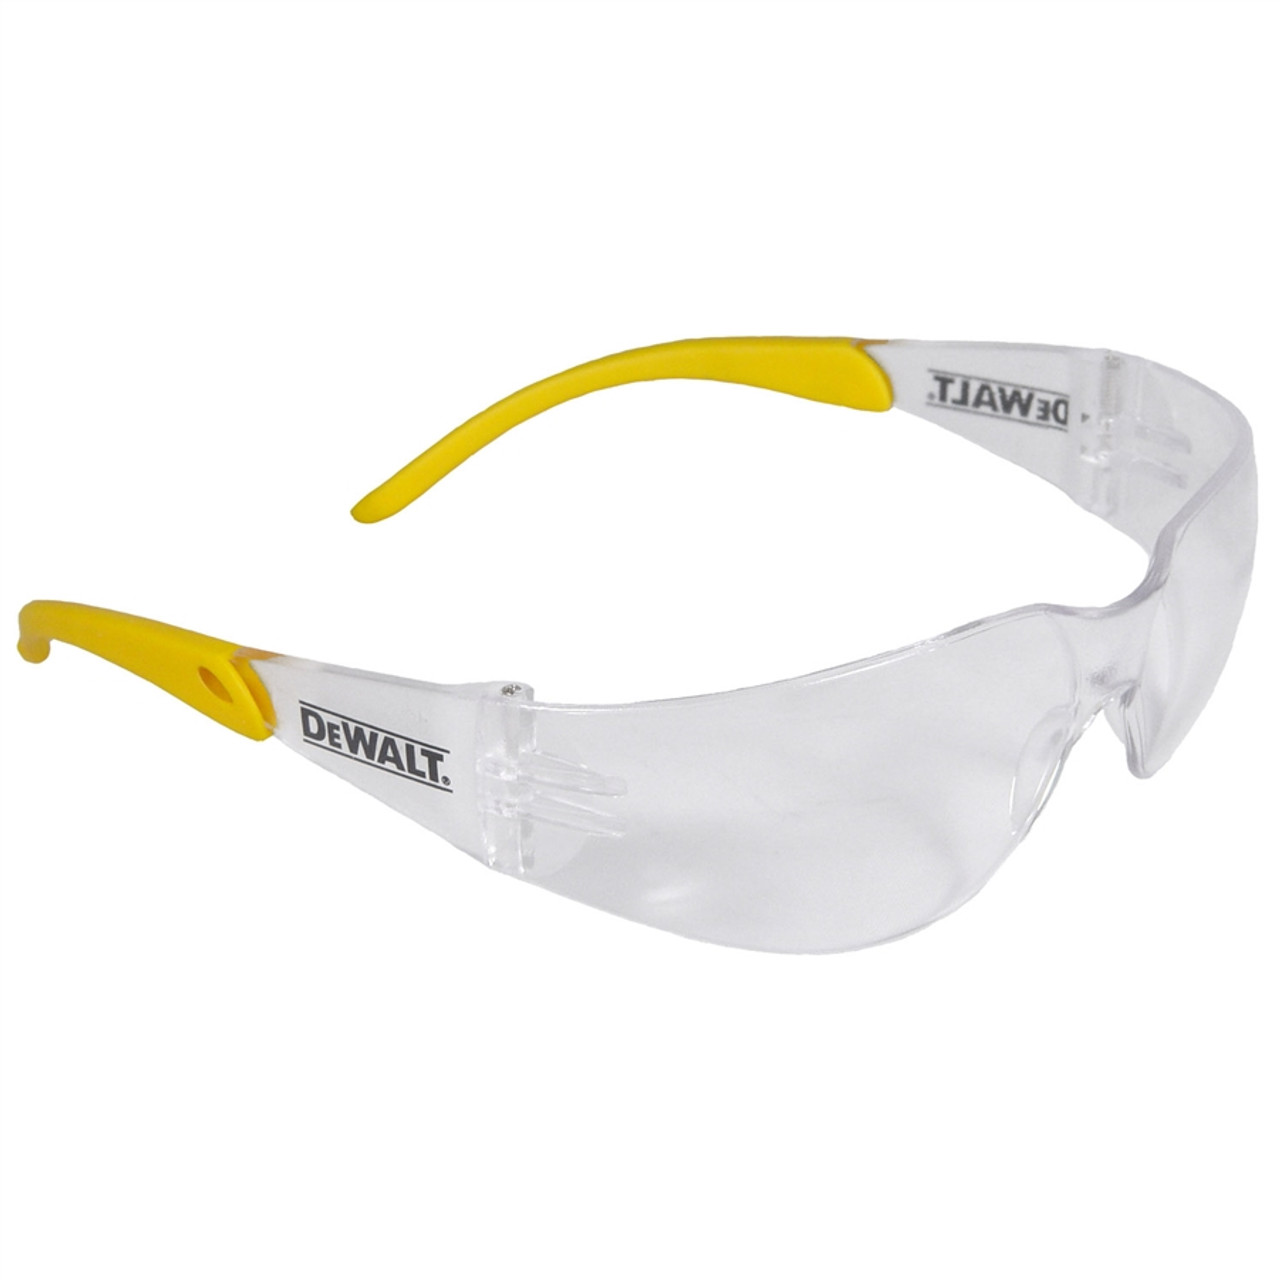 07d8d4bf762 DeWALT Box of 12 Protector Safety Glasses DPG54 Clear